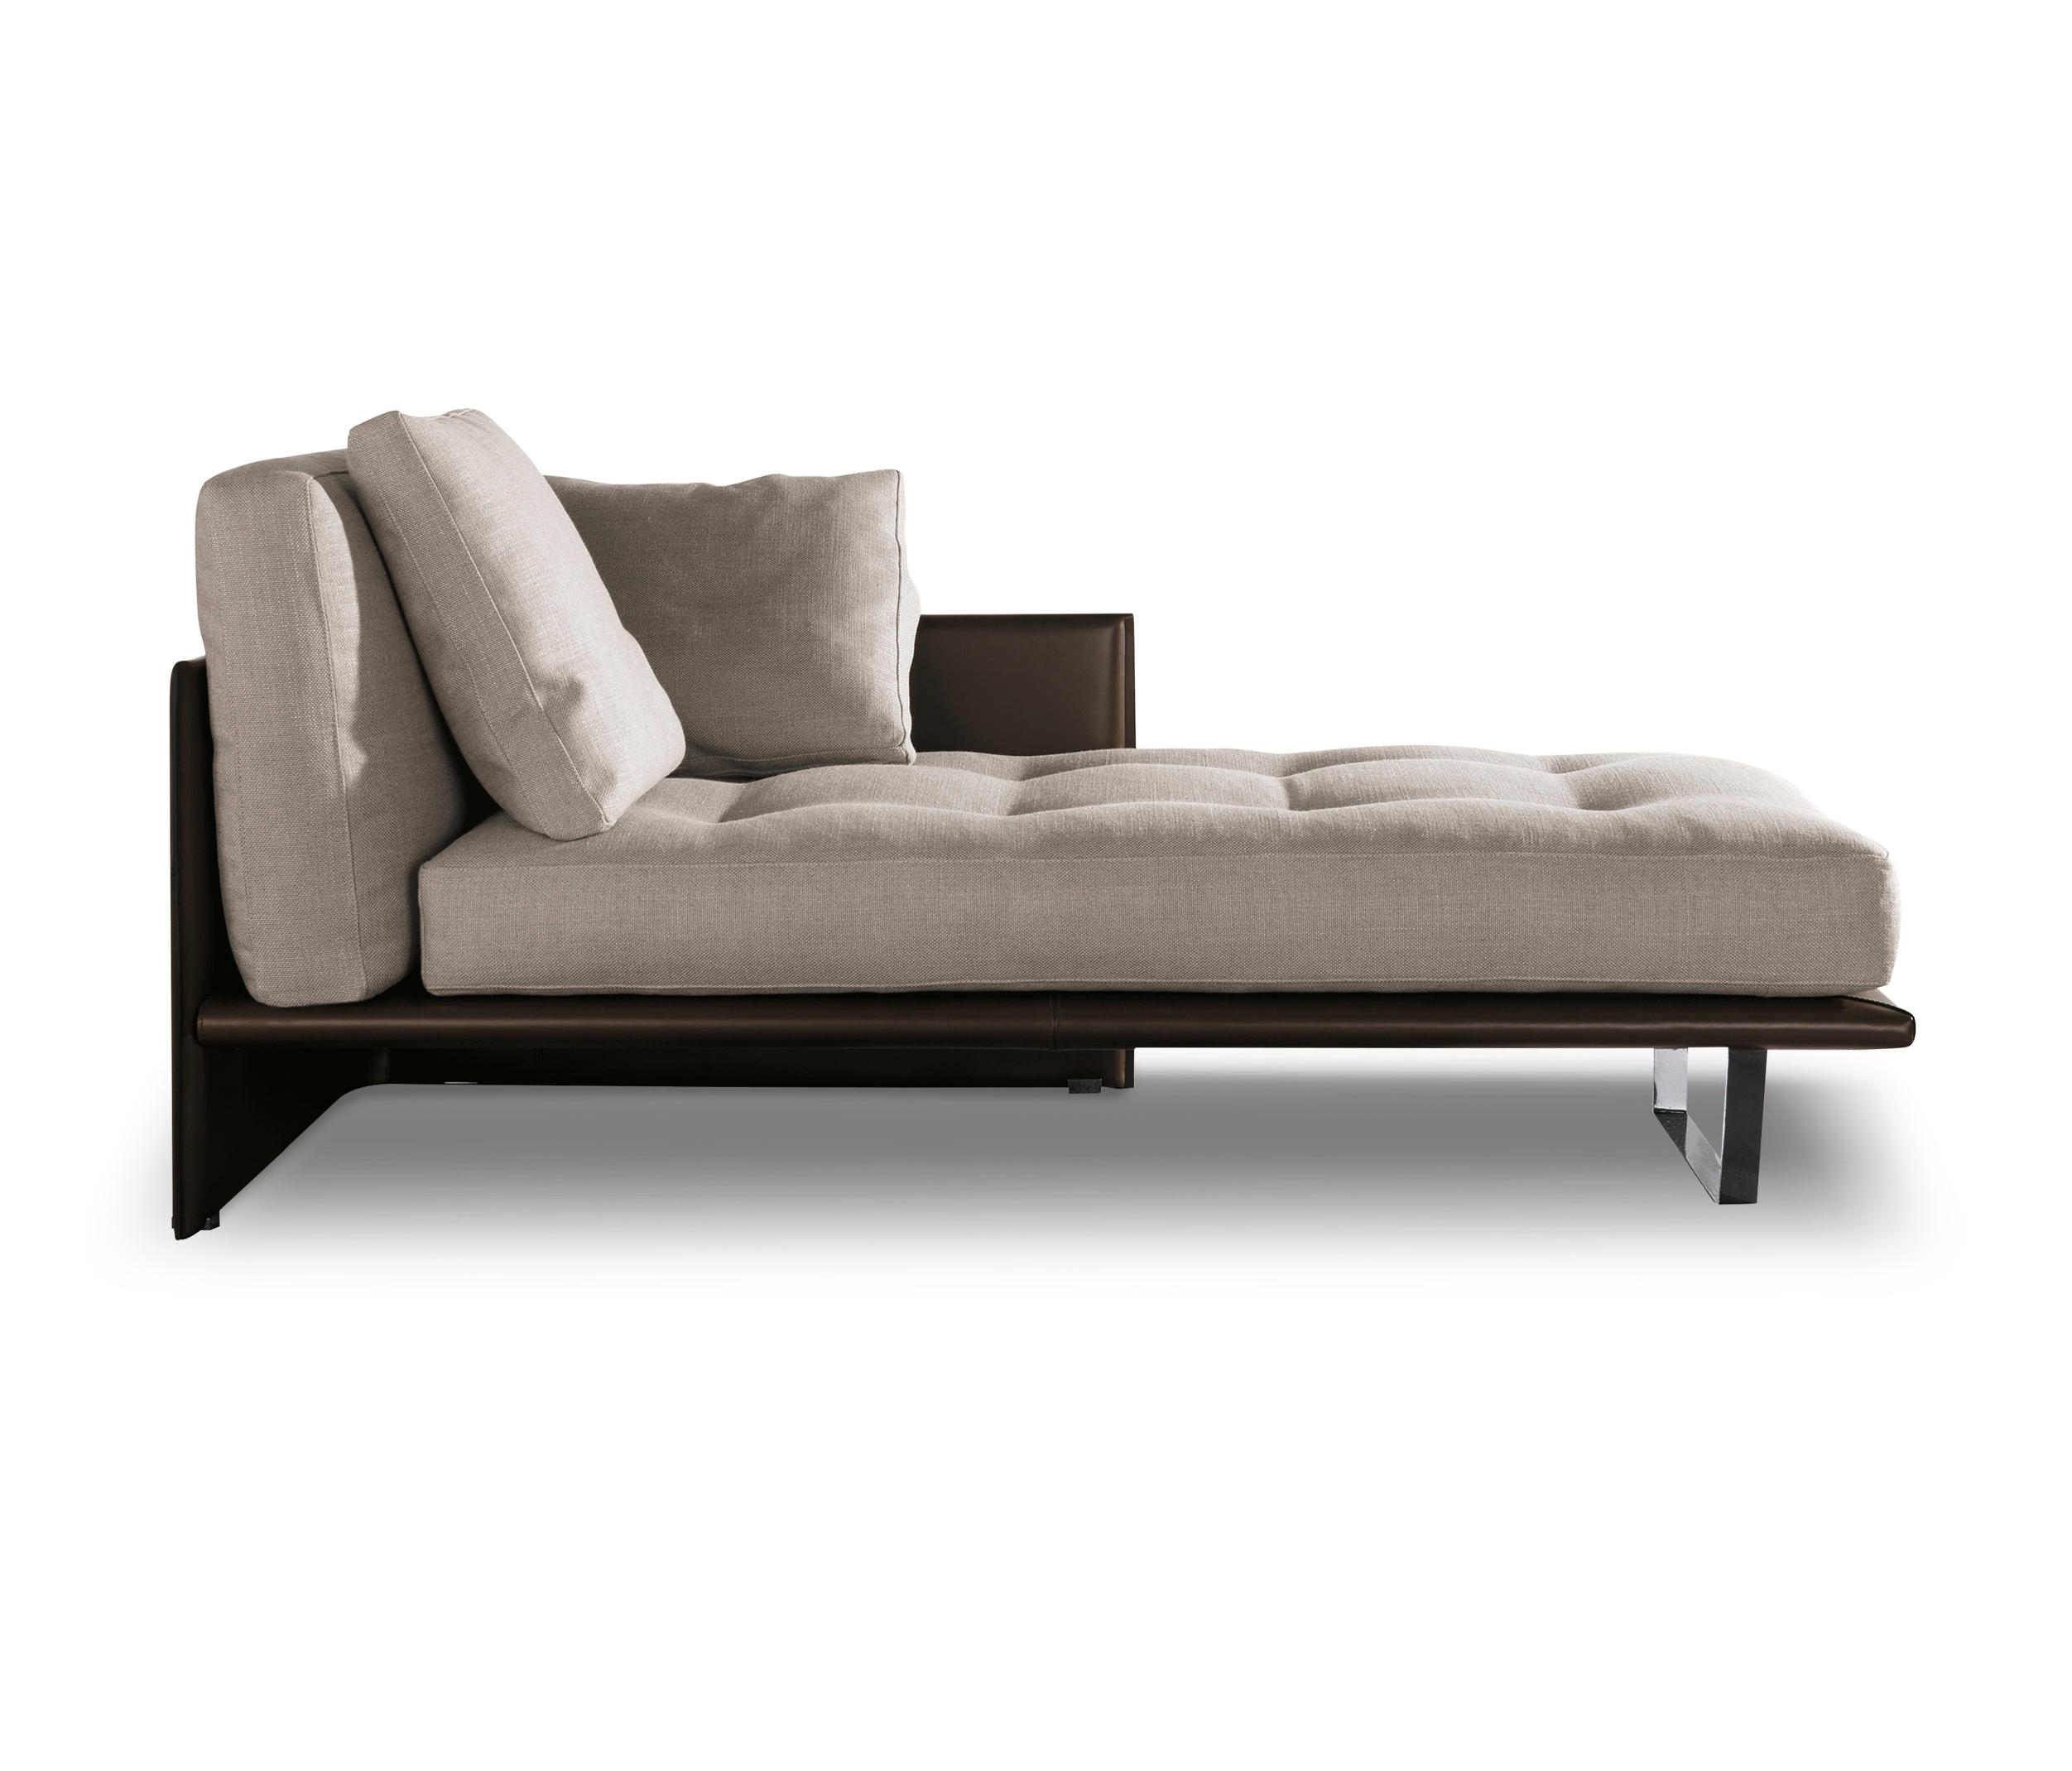 Luggage Chaise Longue Mobilier Design Architonic